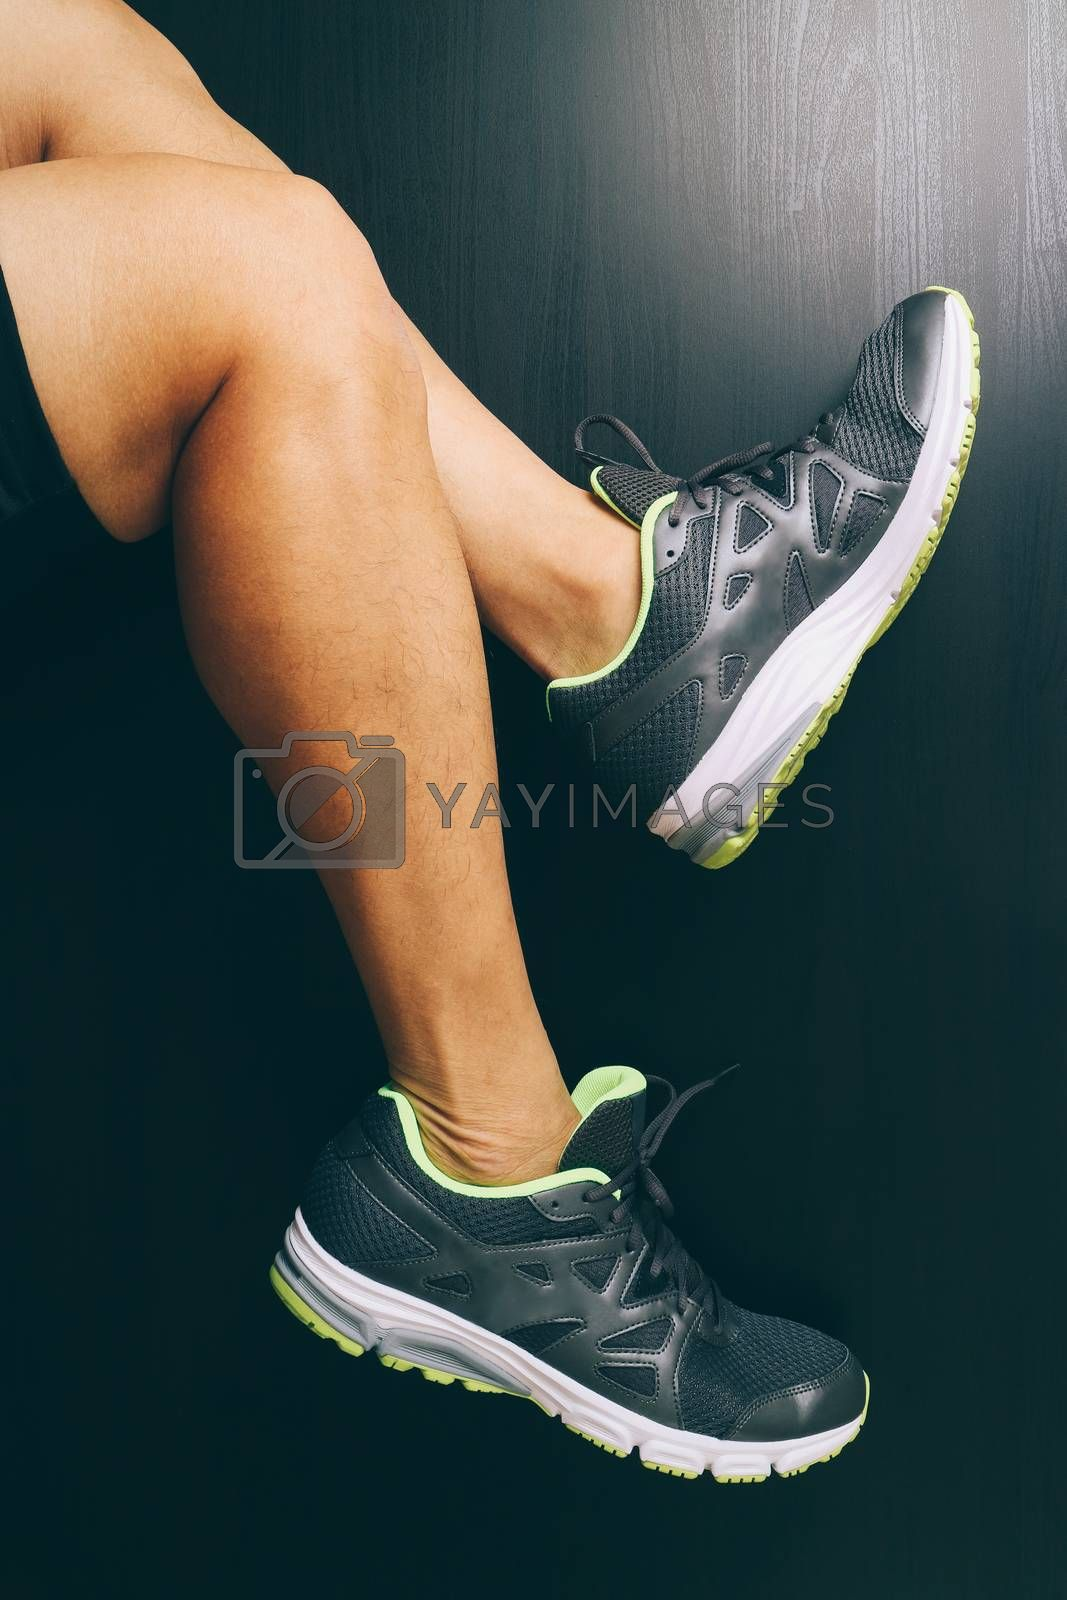 Runner sportsman holding ankle in pain with Broken twisted joint running sport injury and Athletic man touching foot due to sprain on dark background